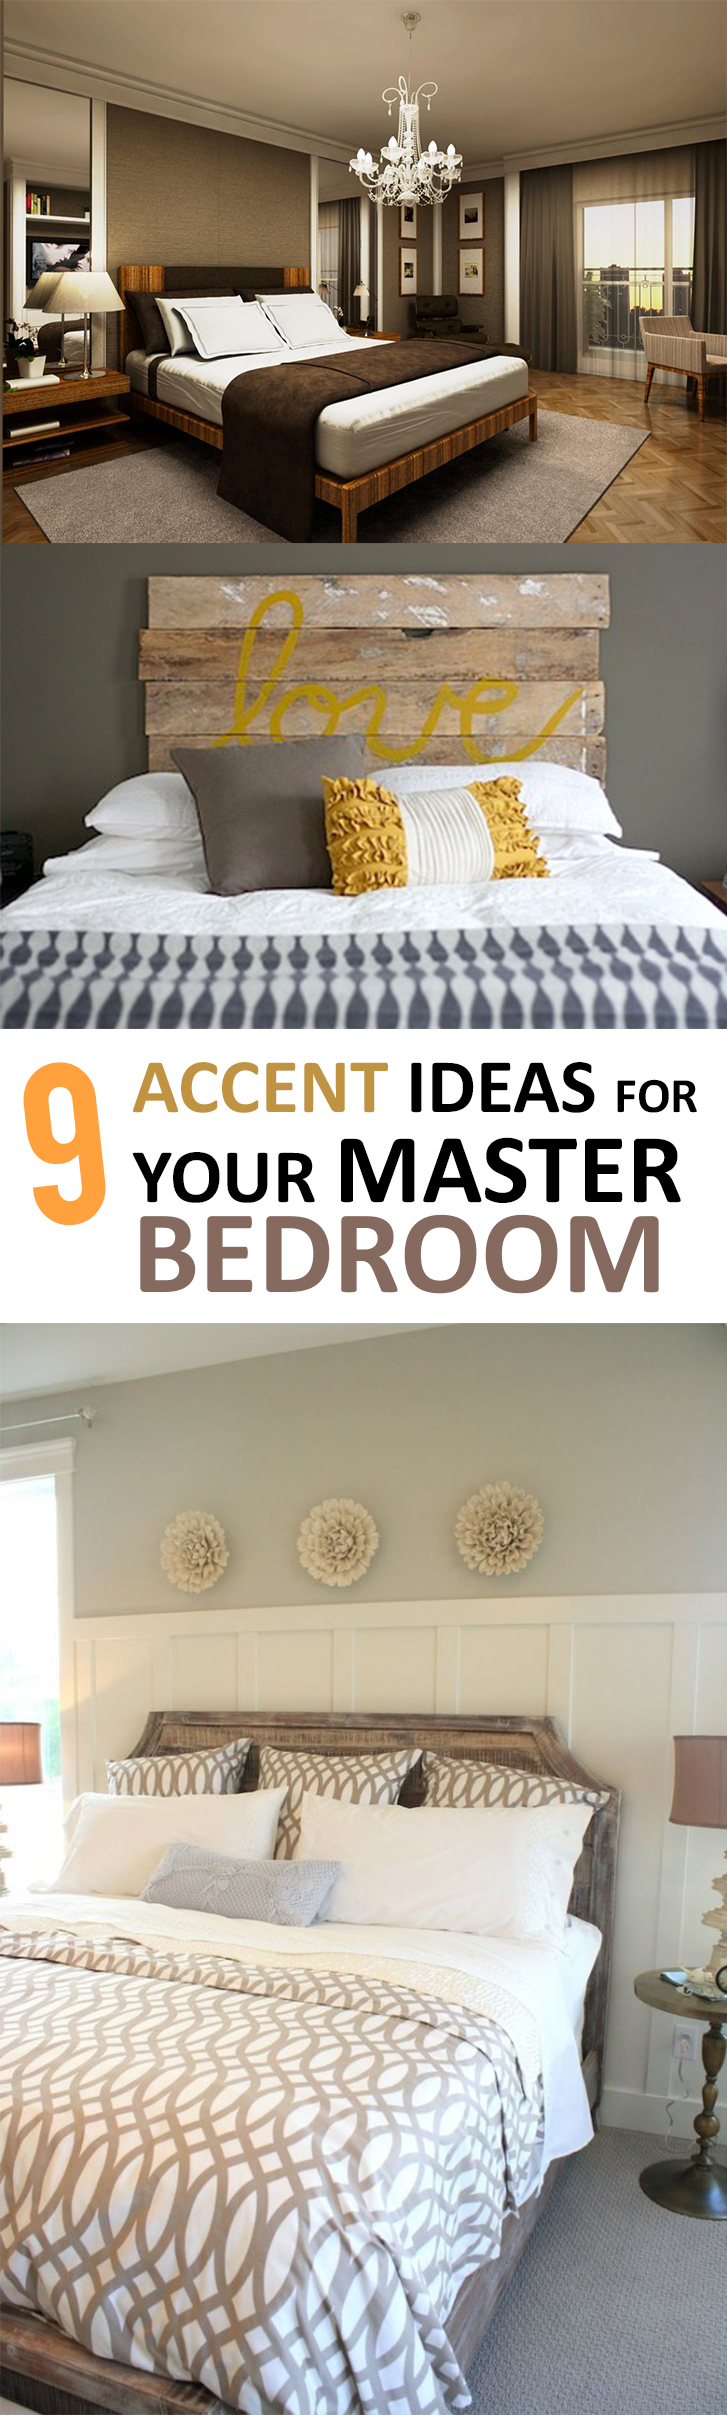 9 Accent Ideas for Your Master Bedroom